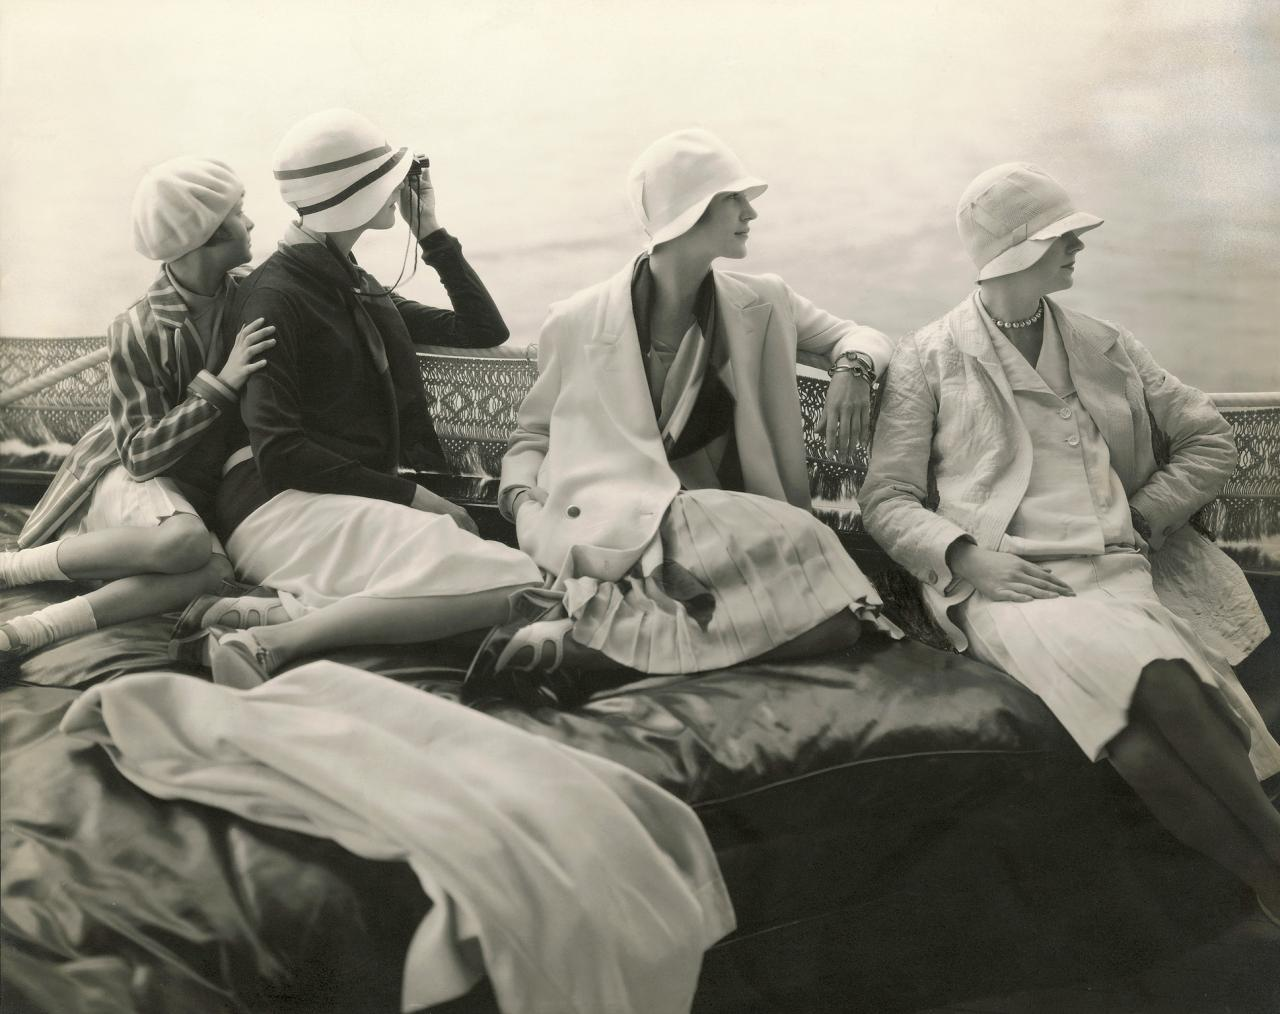 Art Deco Leisure Fashion, Photographer: Edward Steichen